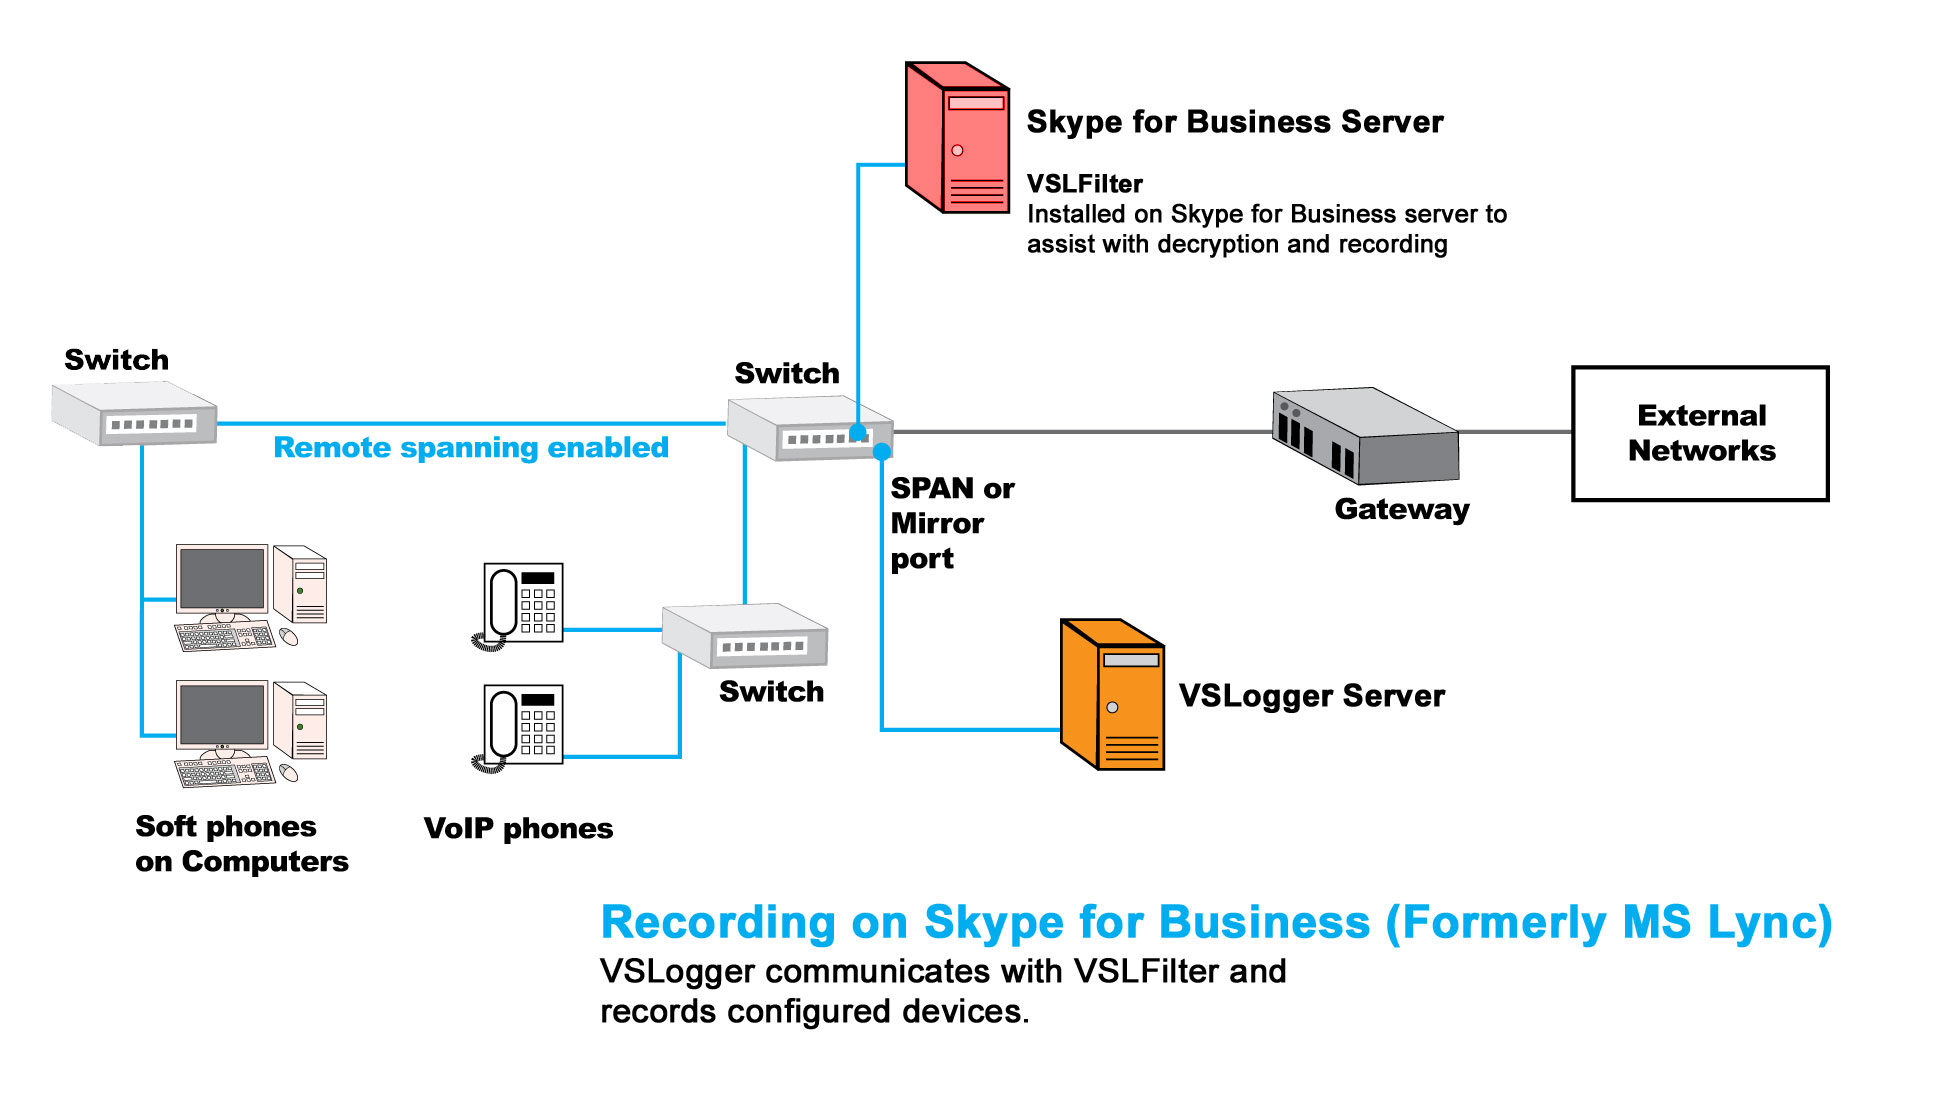 Skype-for-Business Recording